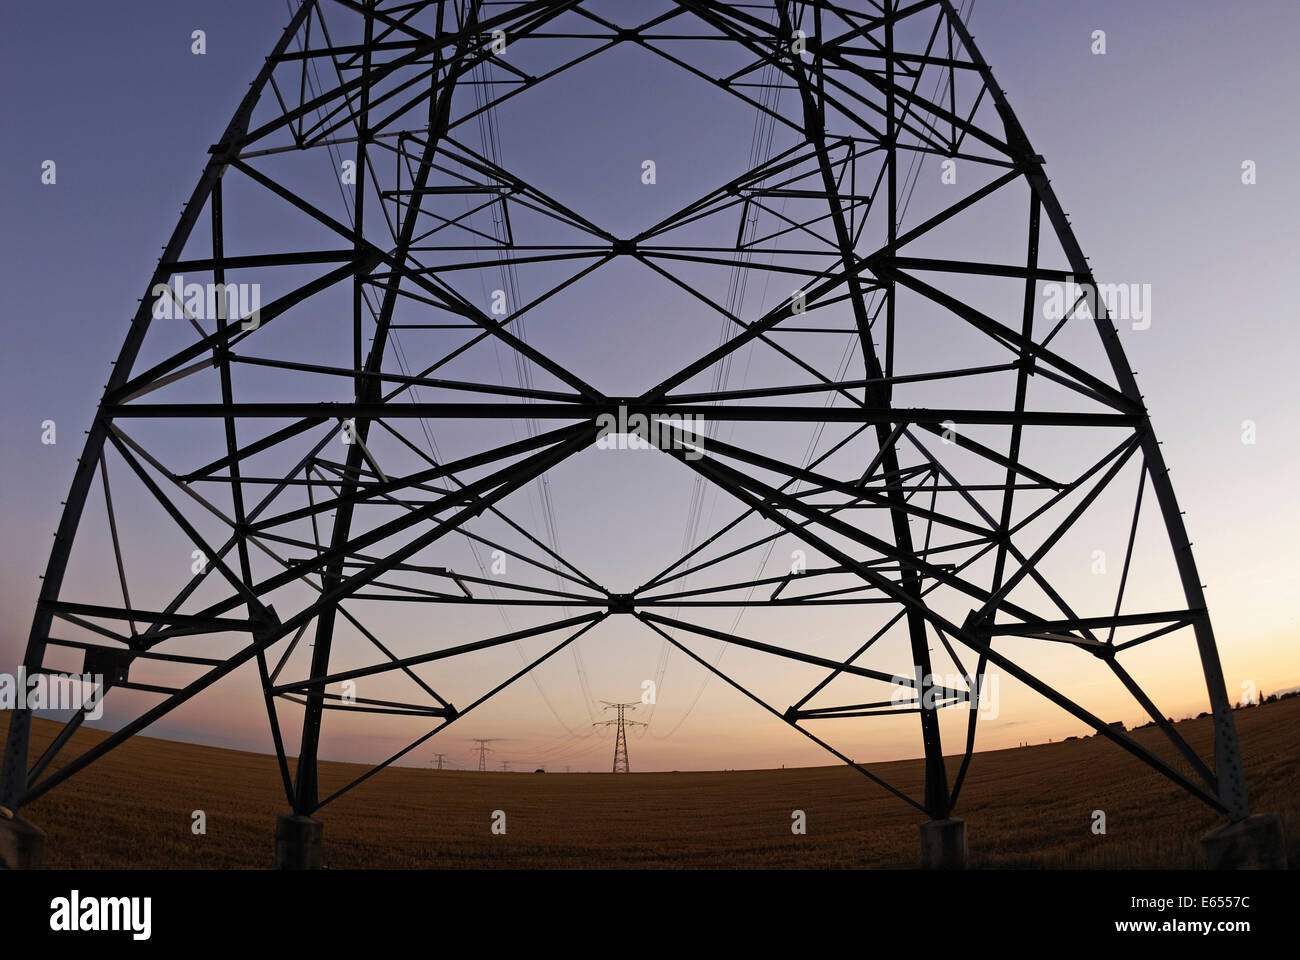 Electricity pylons at sunset, france - Stock Image